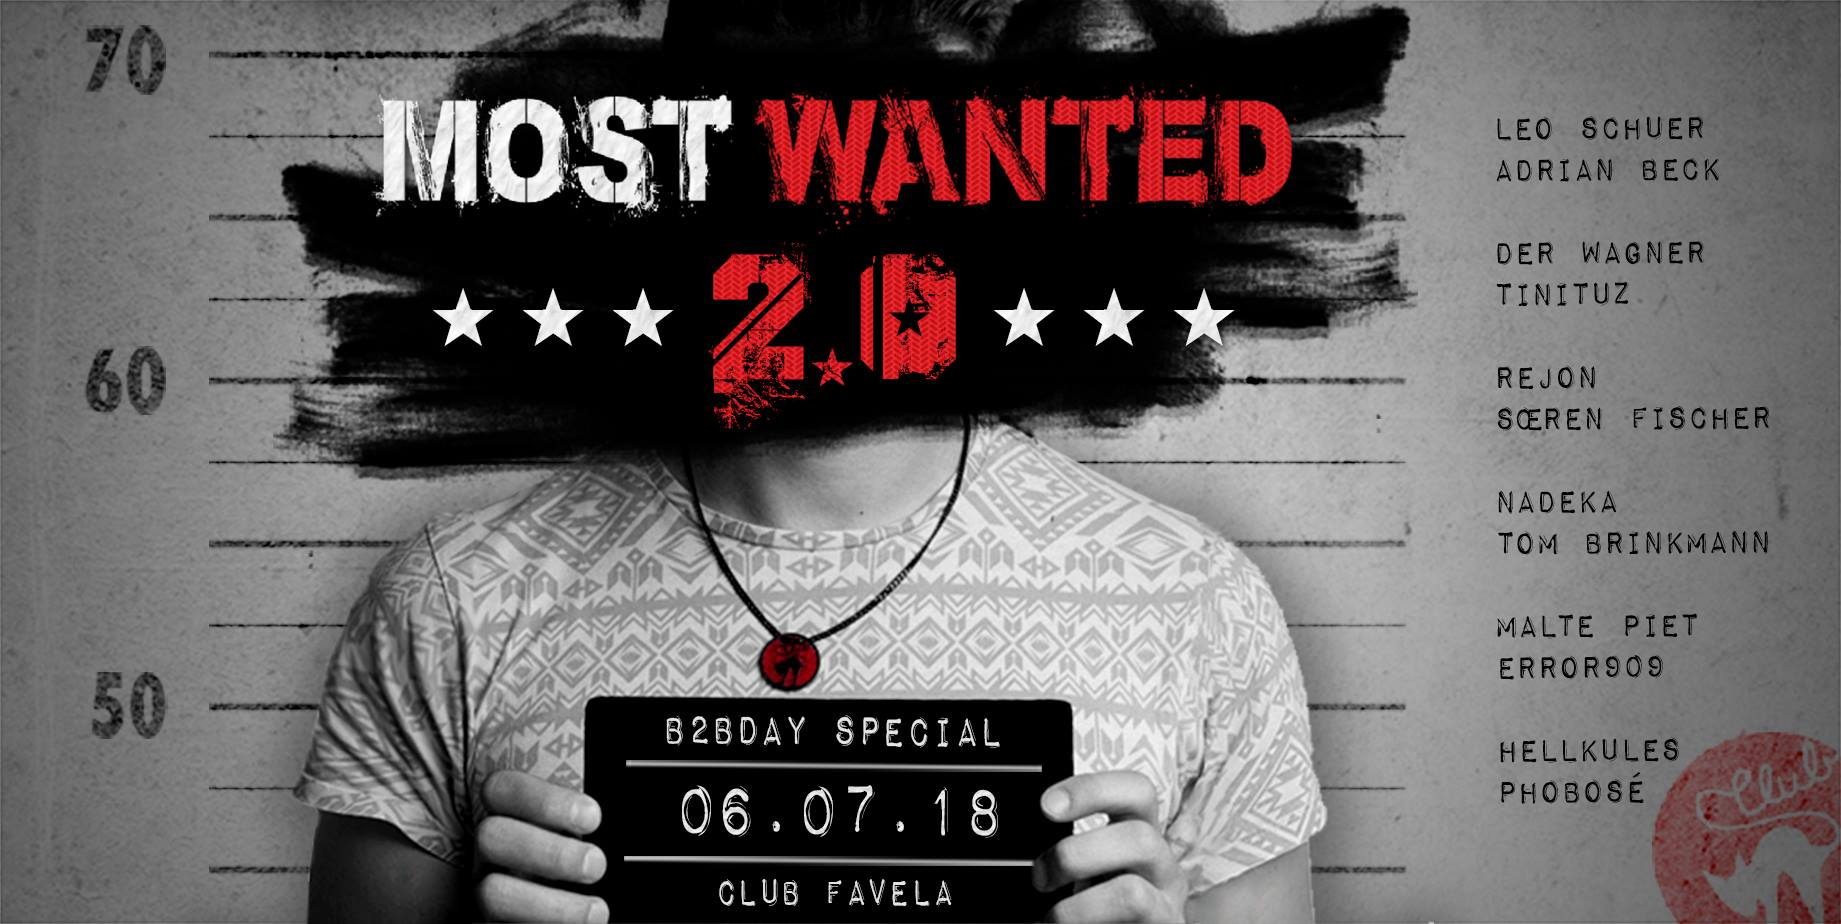 6.7.2018 - Most Wanted 2.0 [Münster]